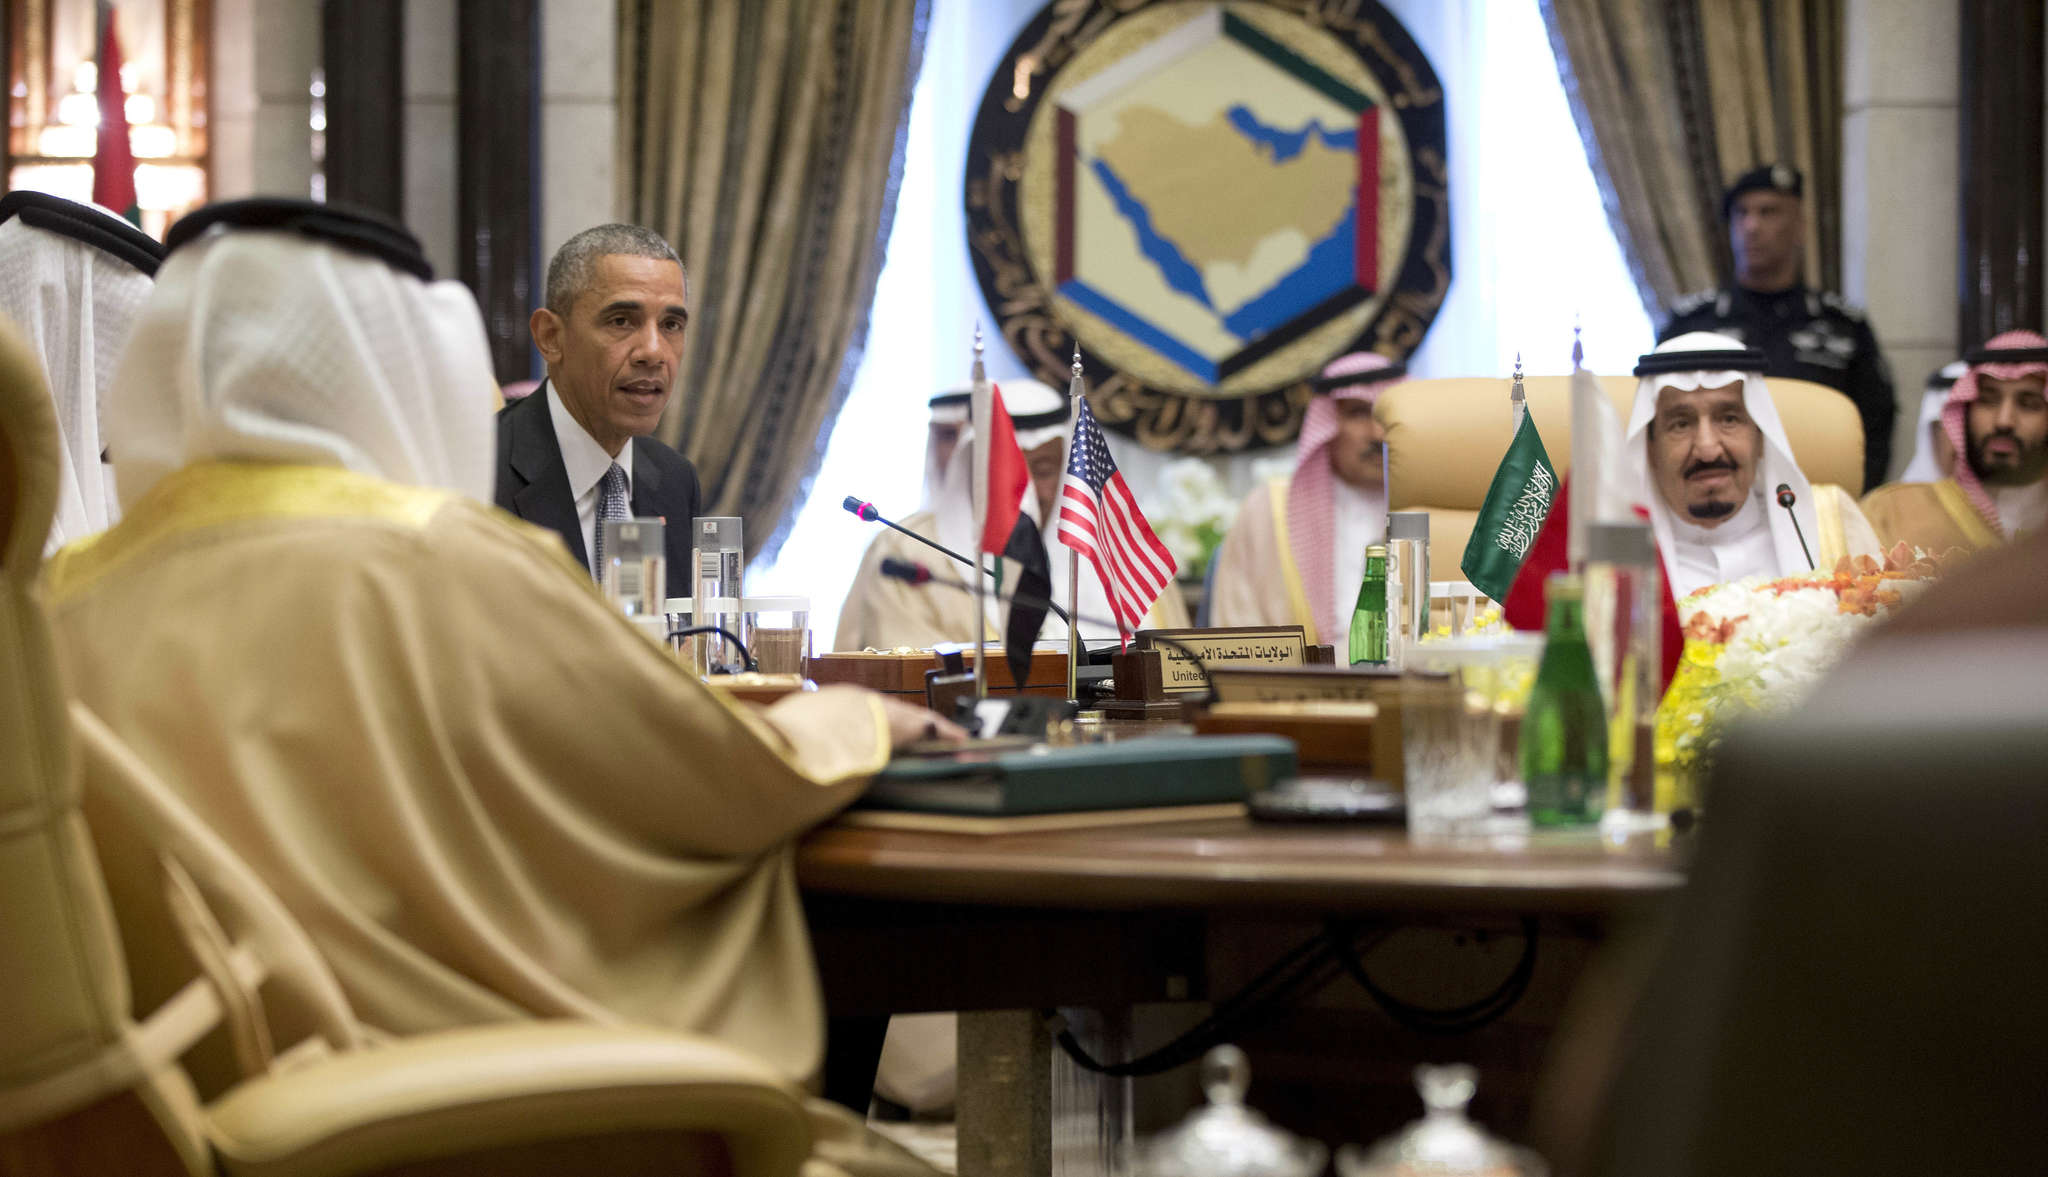 President Obama with Saudi Arabia´s King Salman (right). The Obama and Bush administrations have impeded litigation by U.S. plaintiffs as the Saudi kingdom complained that the suit alleging Saudi responsibility for the 9/11 attacks was damaging relations with the U.S.